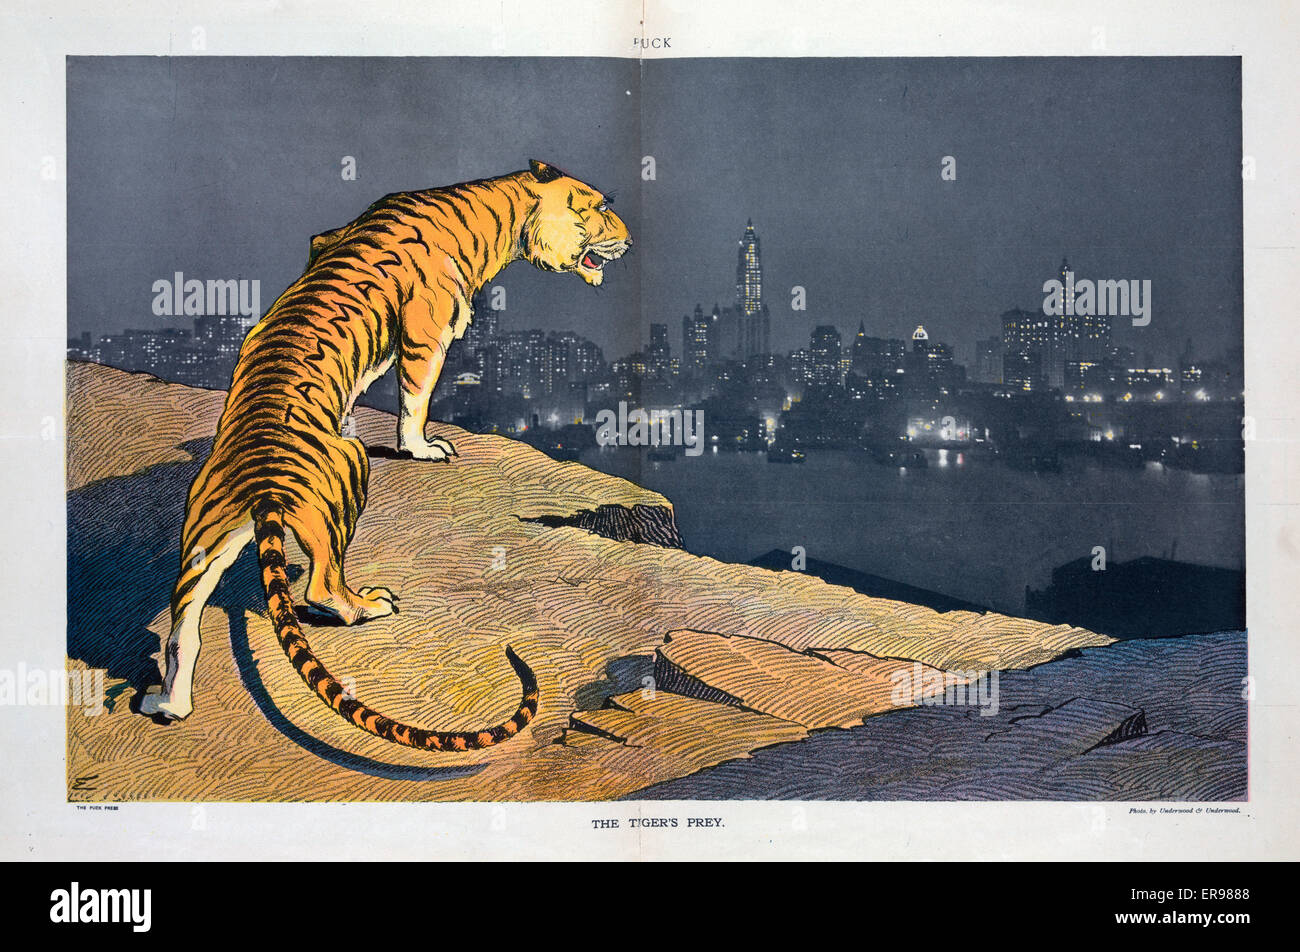 hight resolution of the tiger s prey illustration shows a tiger labeled tammany standing on the edge of a